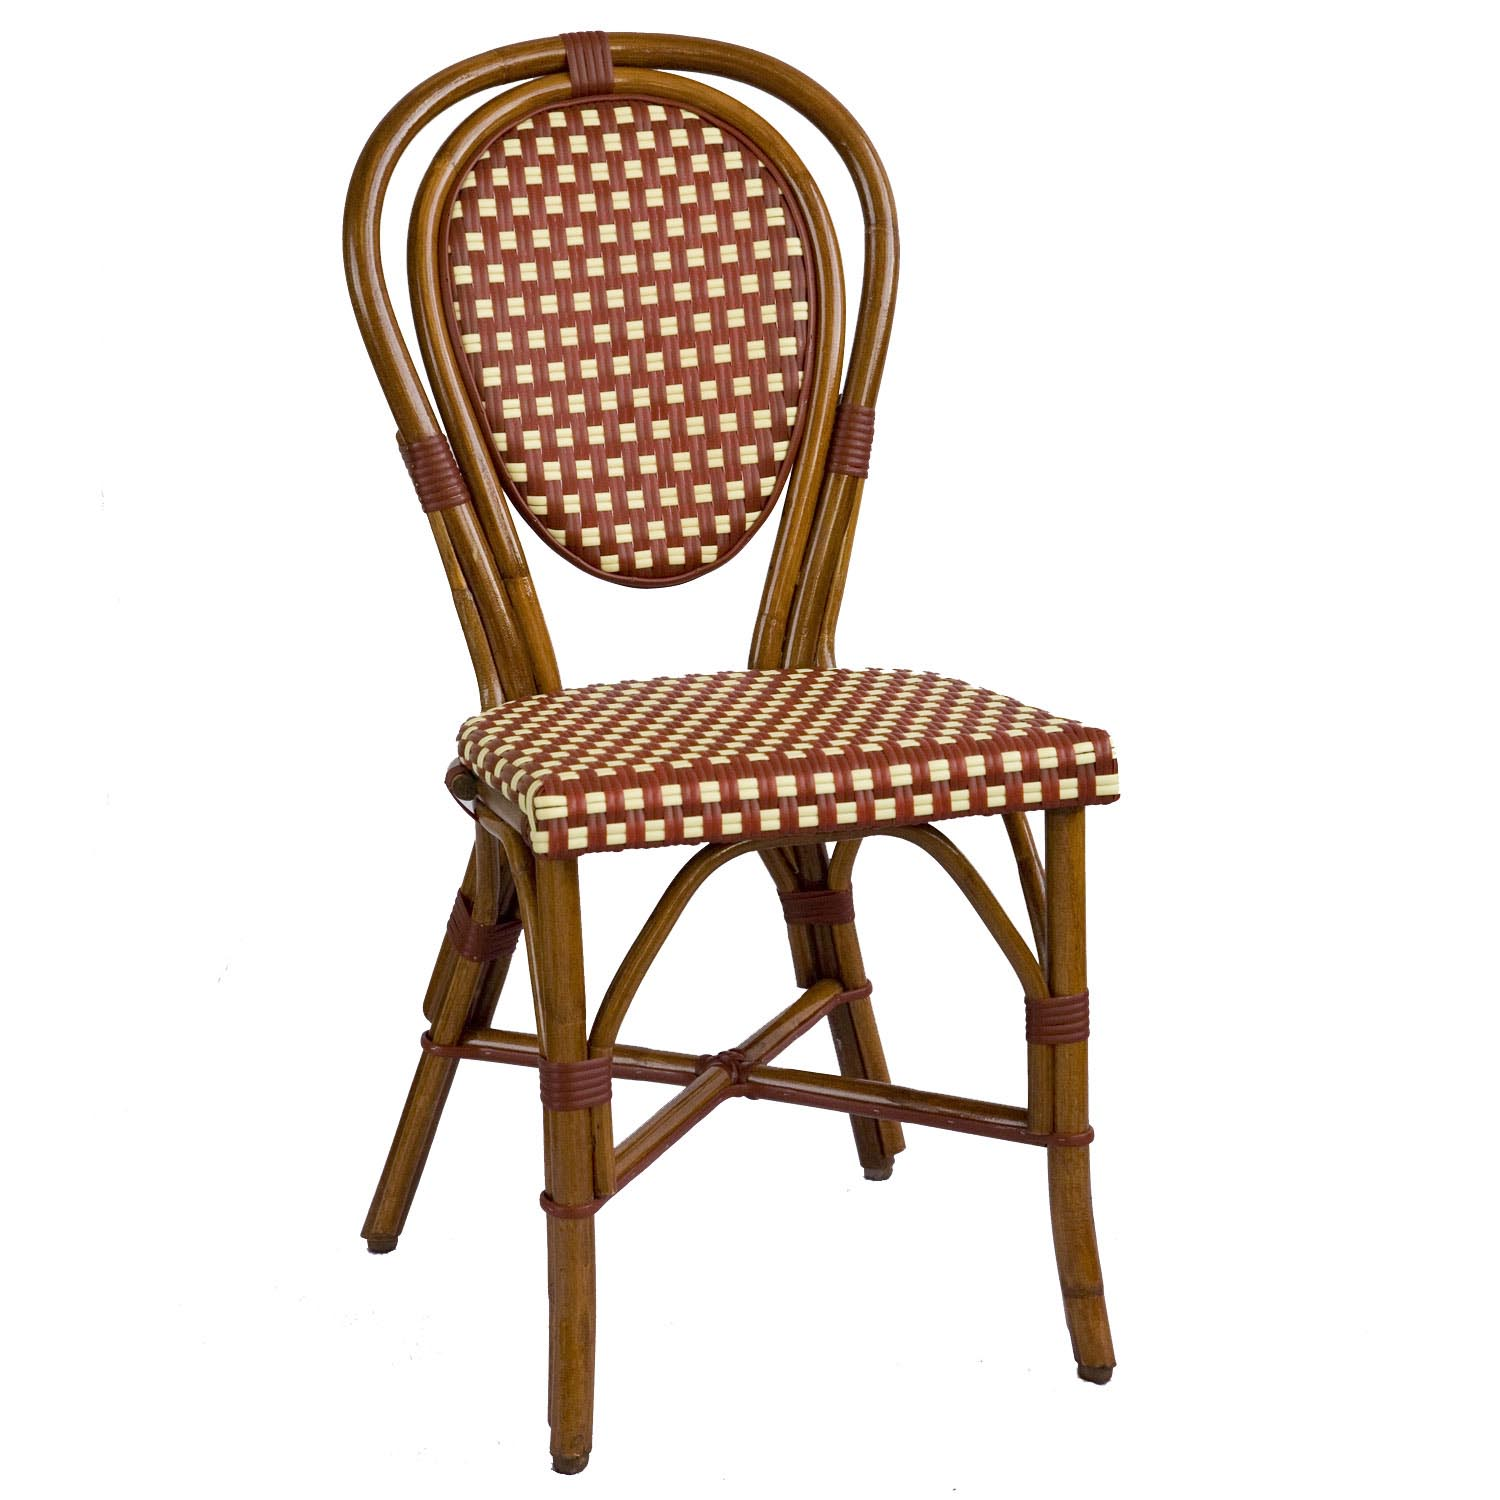 Parisian Rattan Chair Burgundy Cream SQ